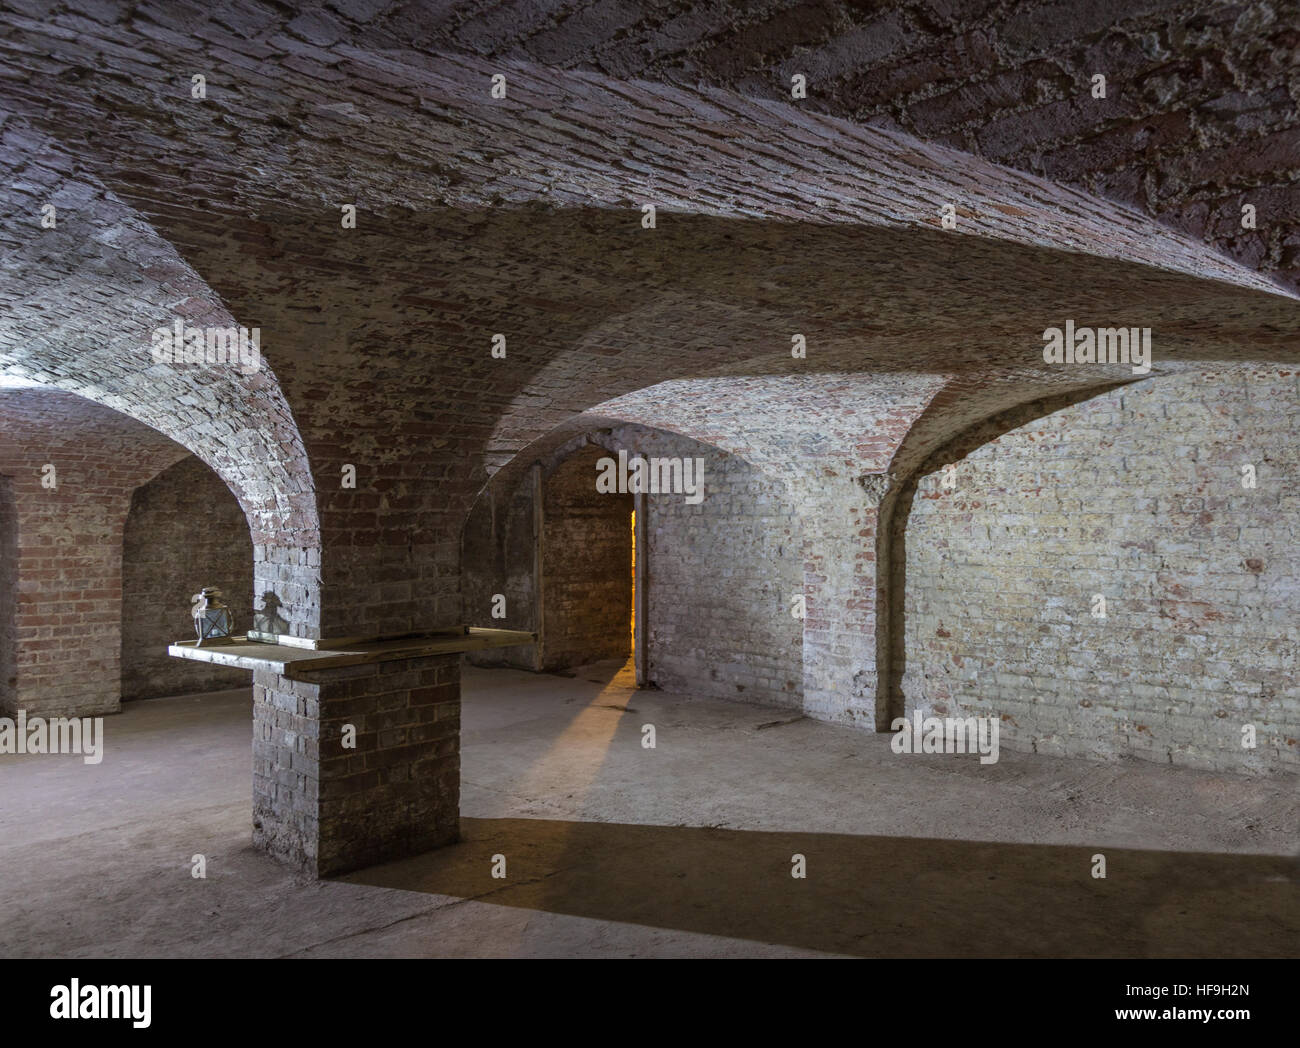 Cellar room made of brick with curved ceiling and an entrance with a  shaft of light beaming in. - Stock Image